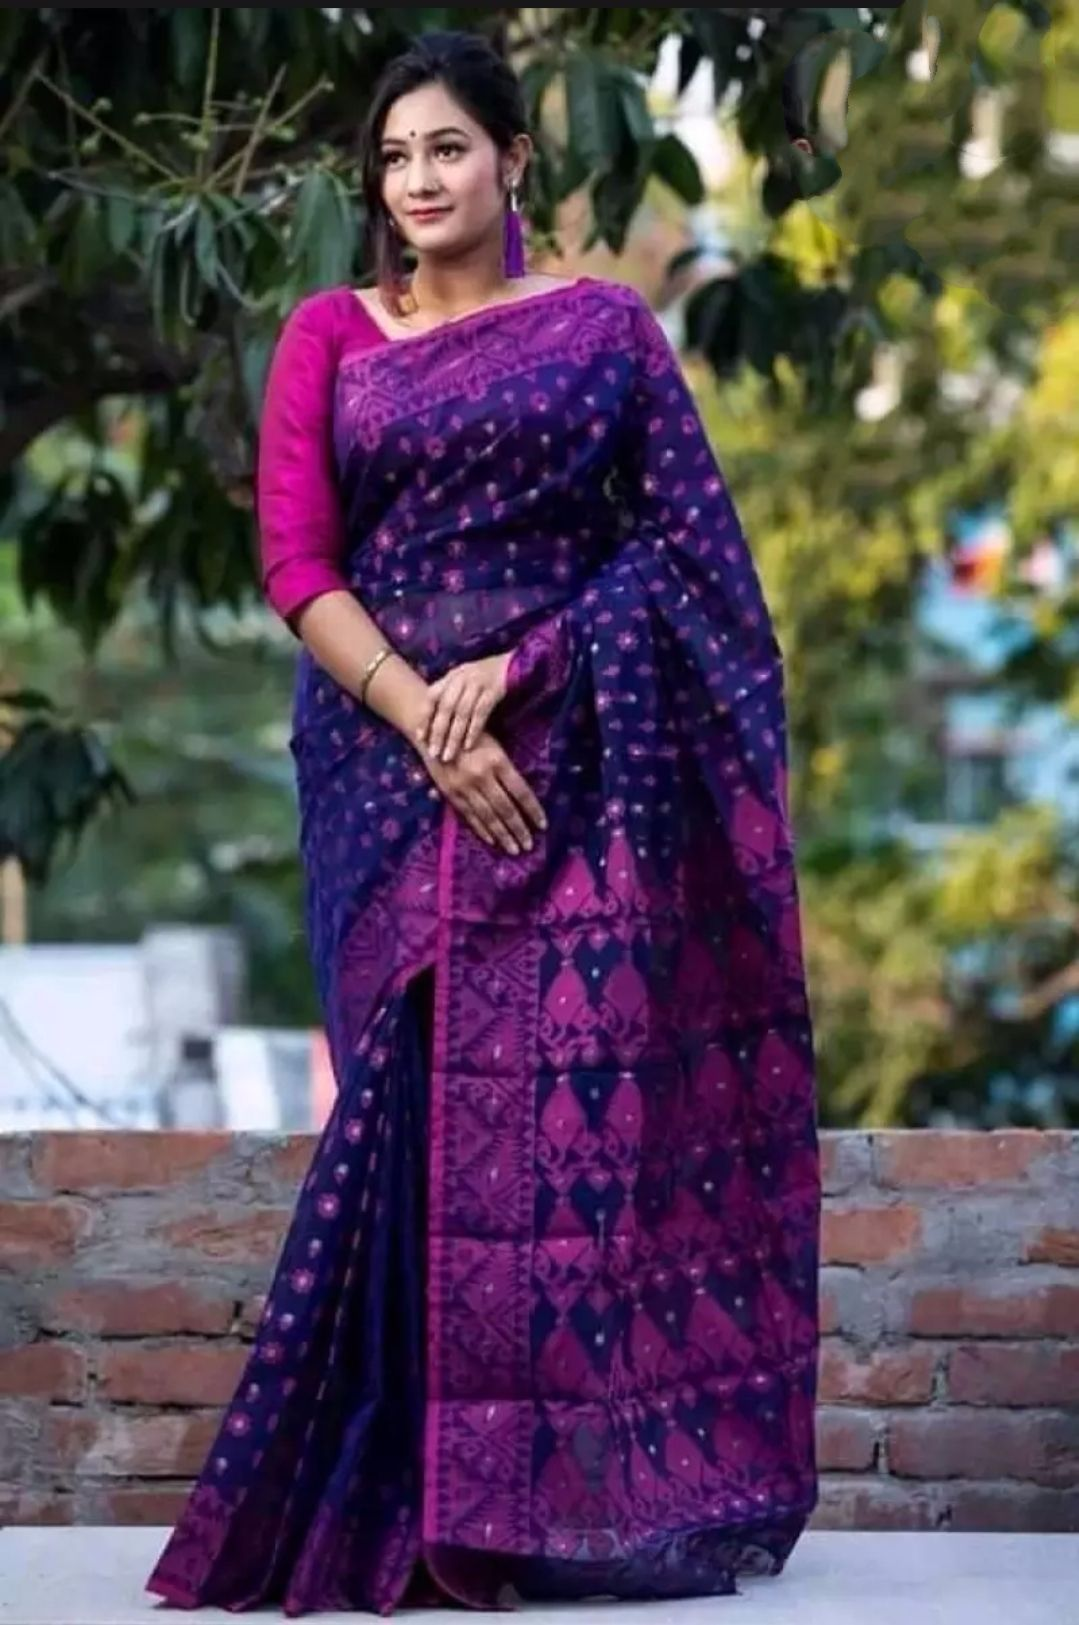 Traditional Unstitched Wetless Jamdani Sari for Women in Sparkling Collection with Dazzling Design Rip-Plum-Purple Heavy Curved Work